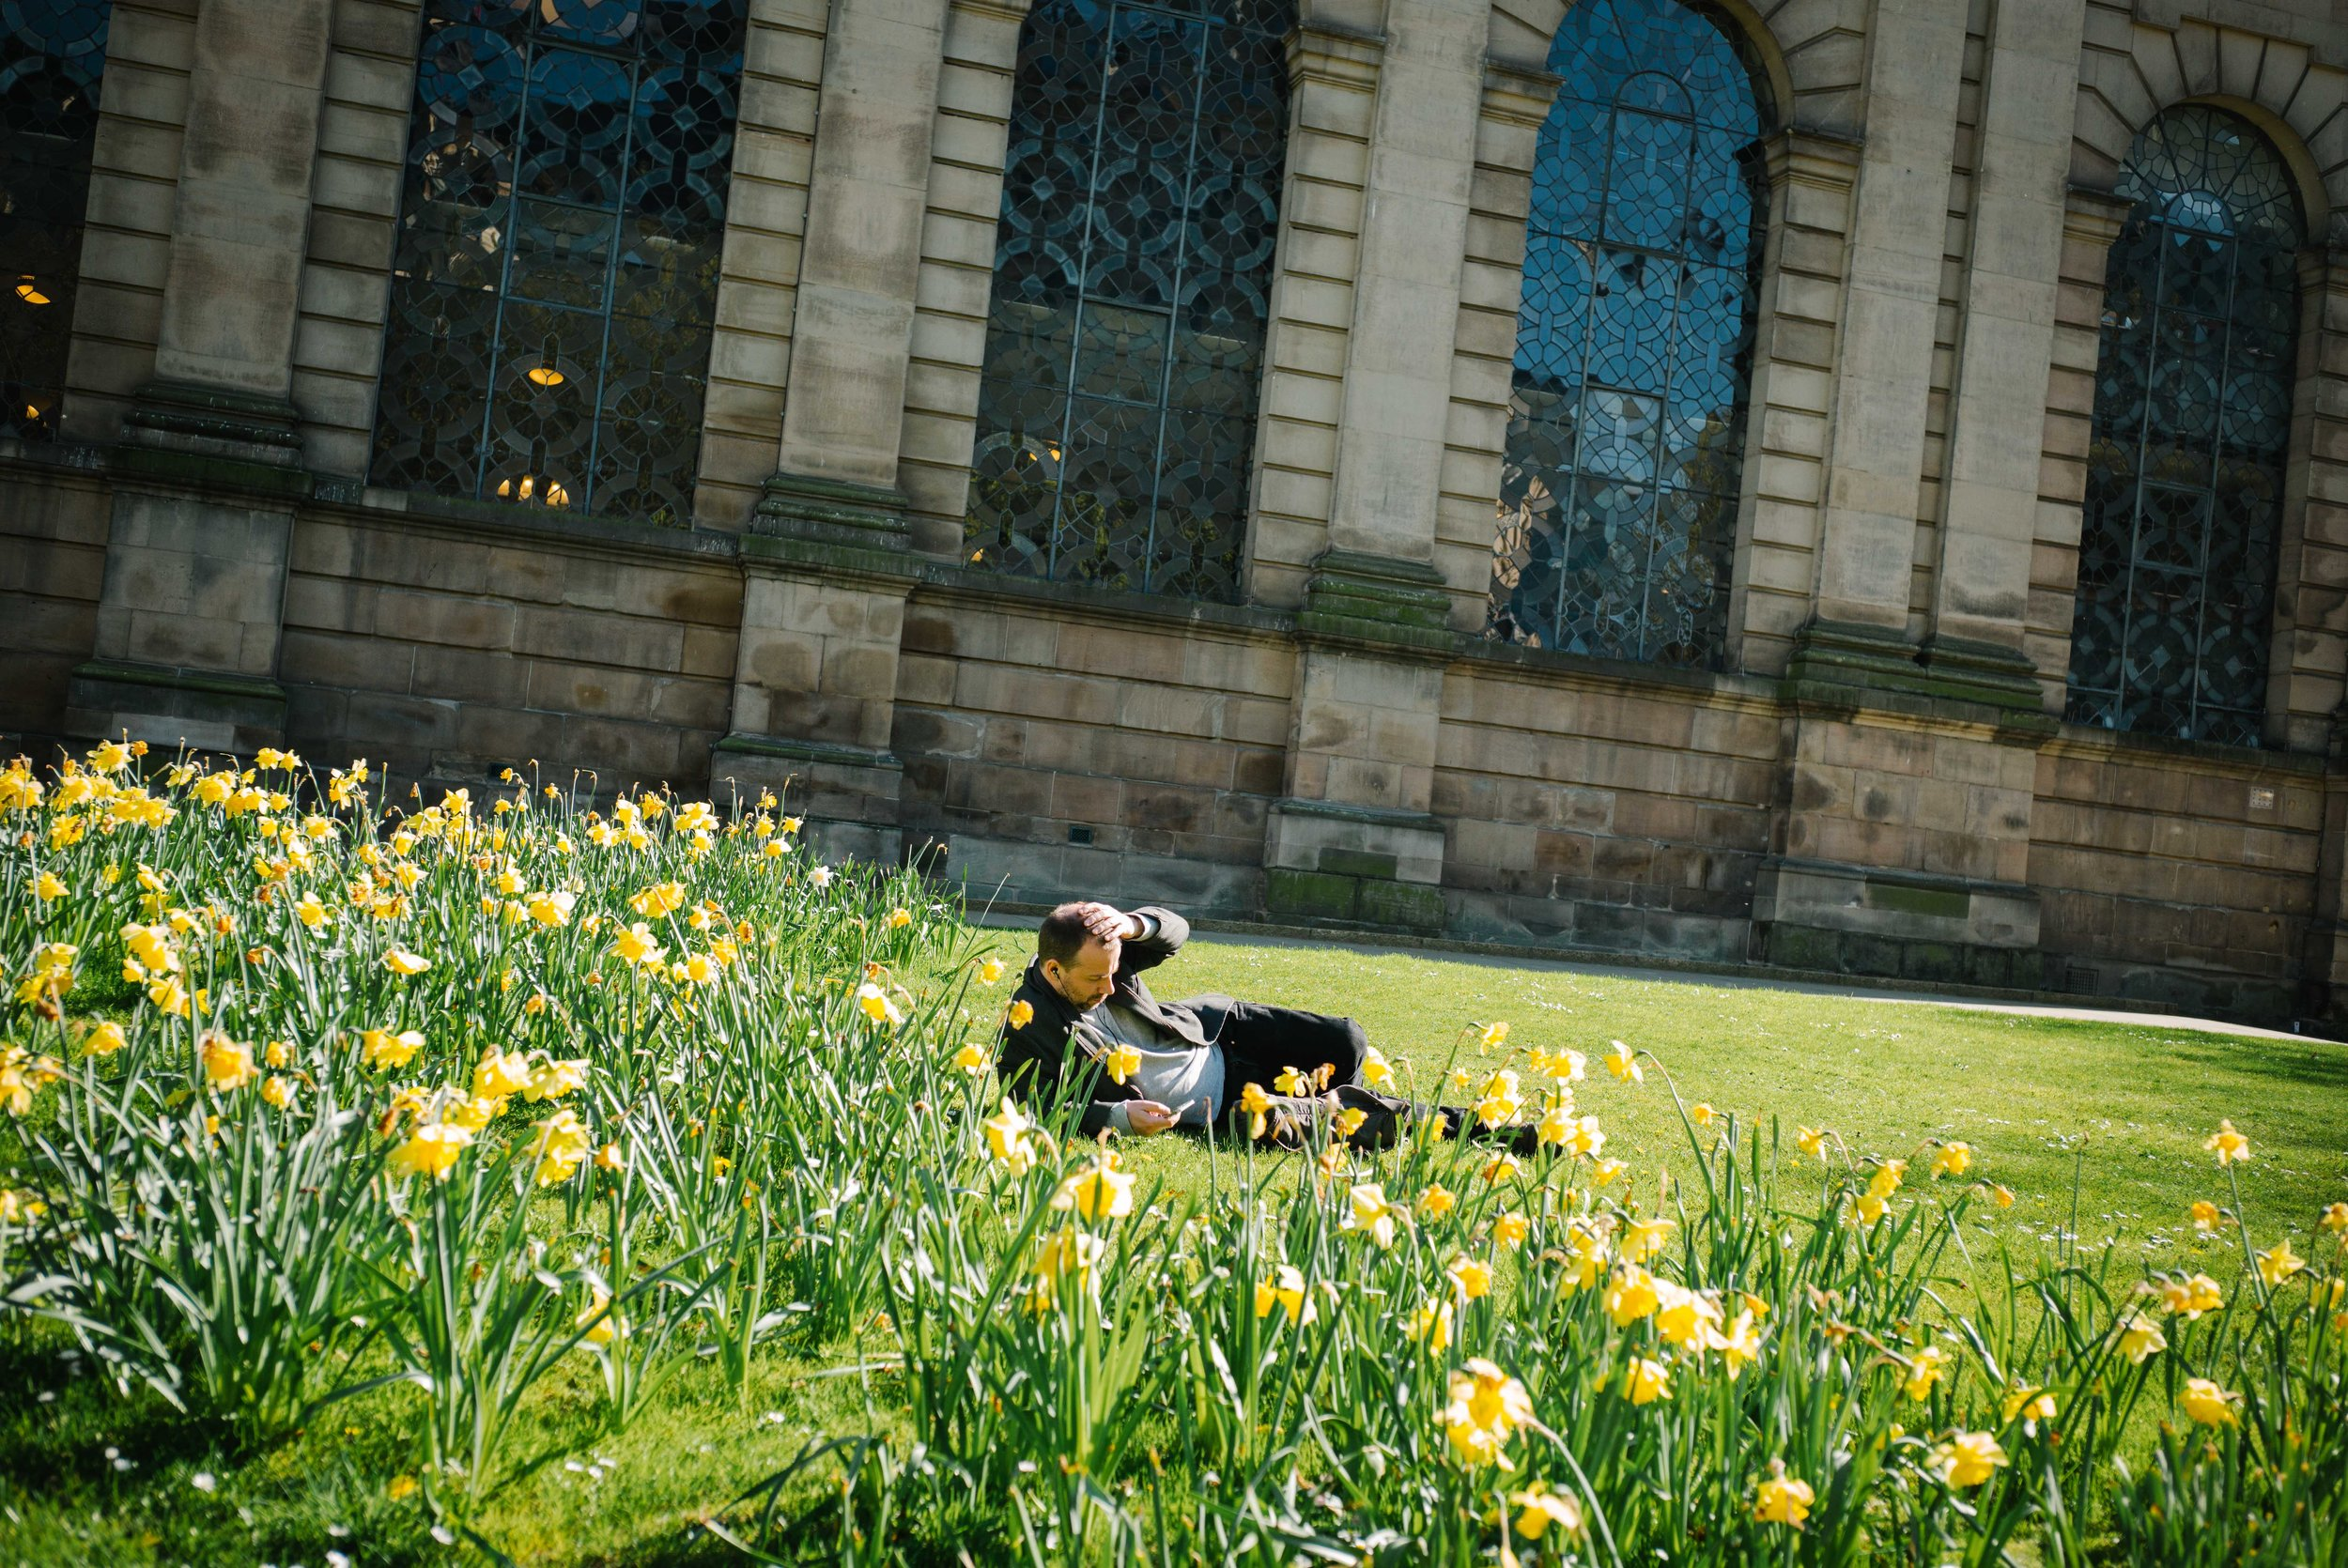 A gentleman relaxes by the daffodils - Clifford Darby 2017